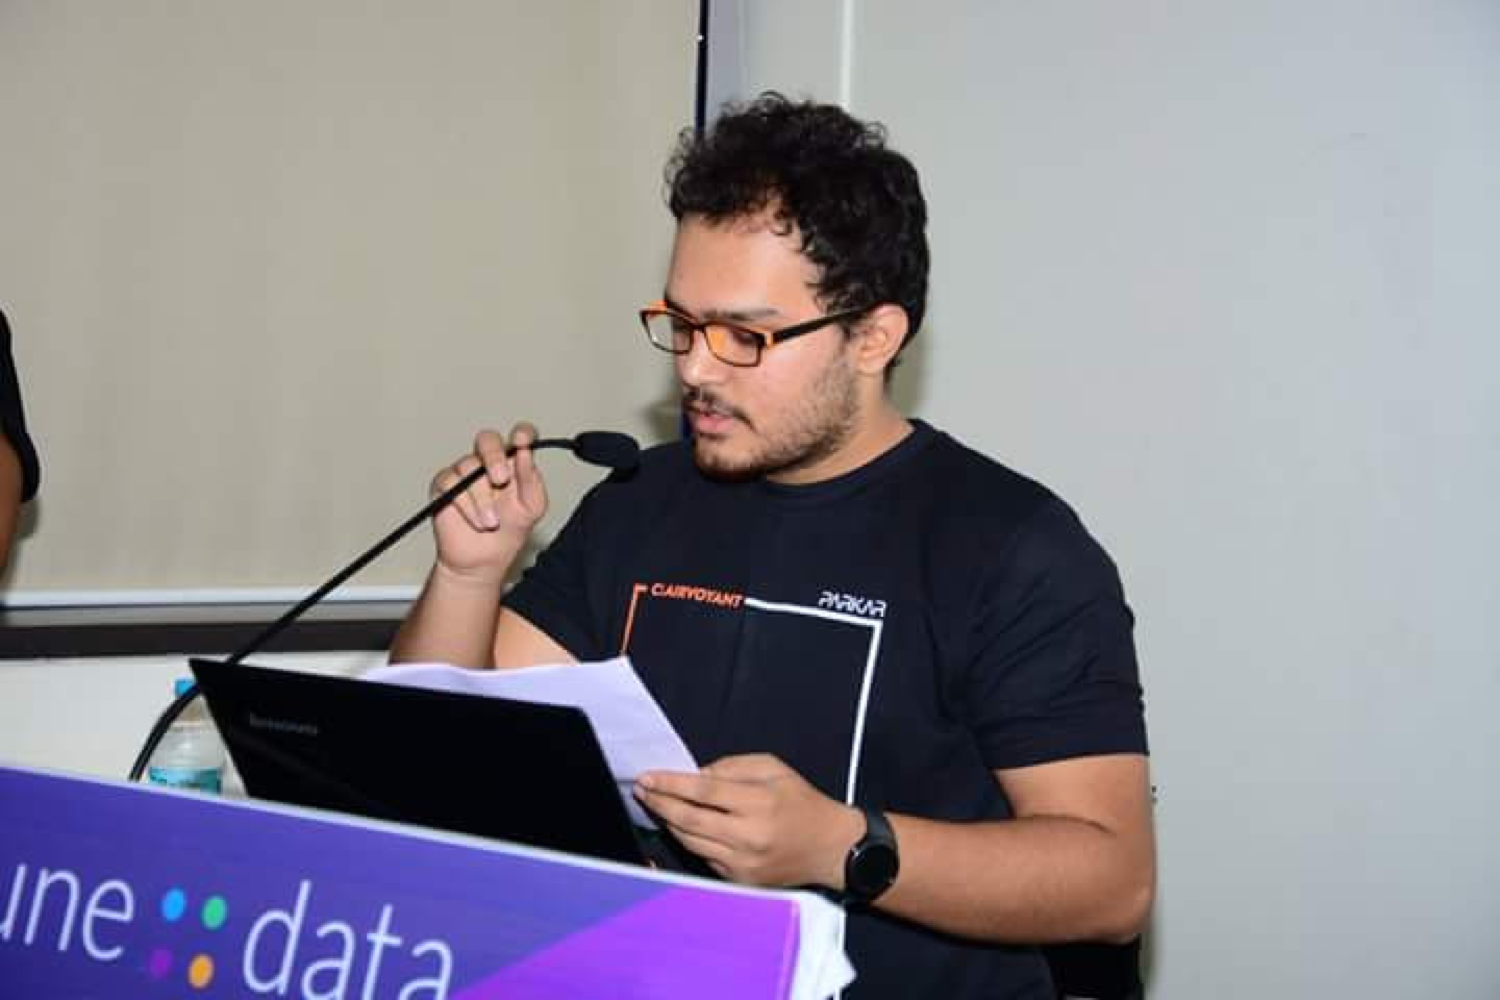 Pune Data Conference